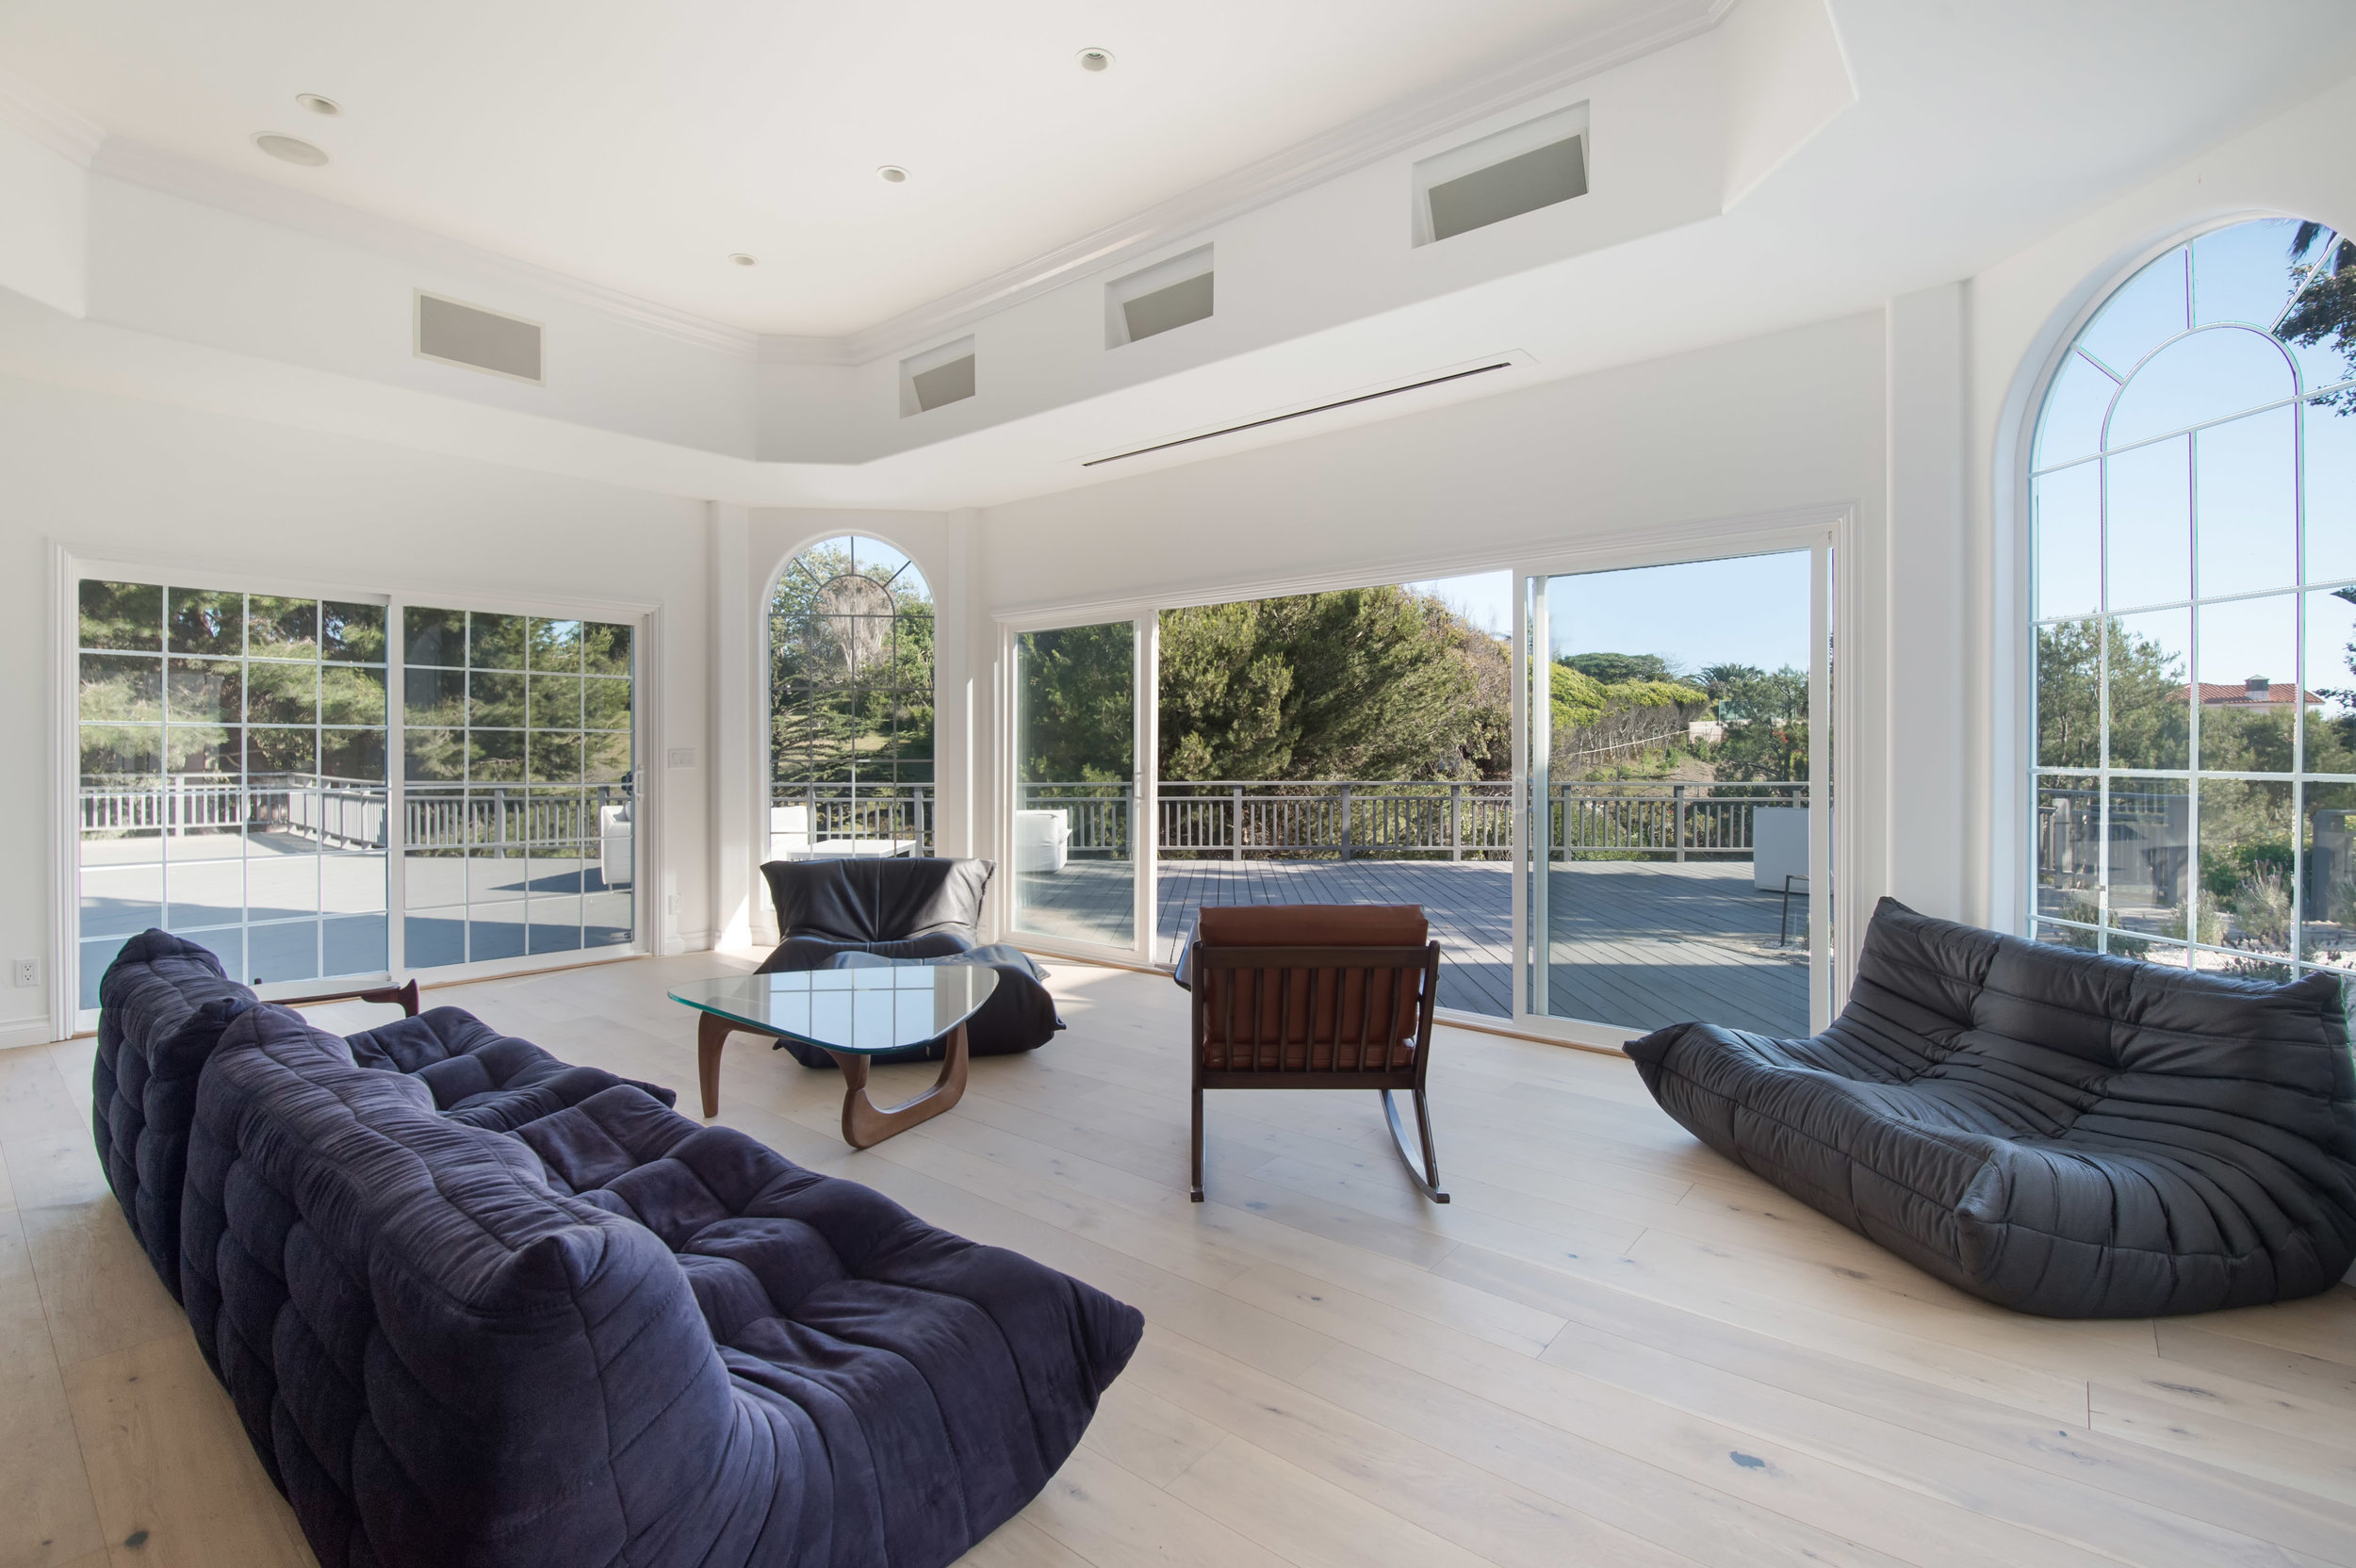 022 guest house 30340 Morning View Malibu For Sale The Malibu Life Team Luxury Real Estate.jpg